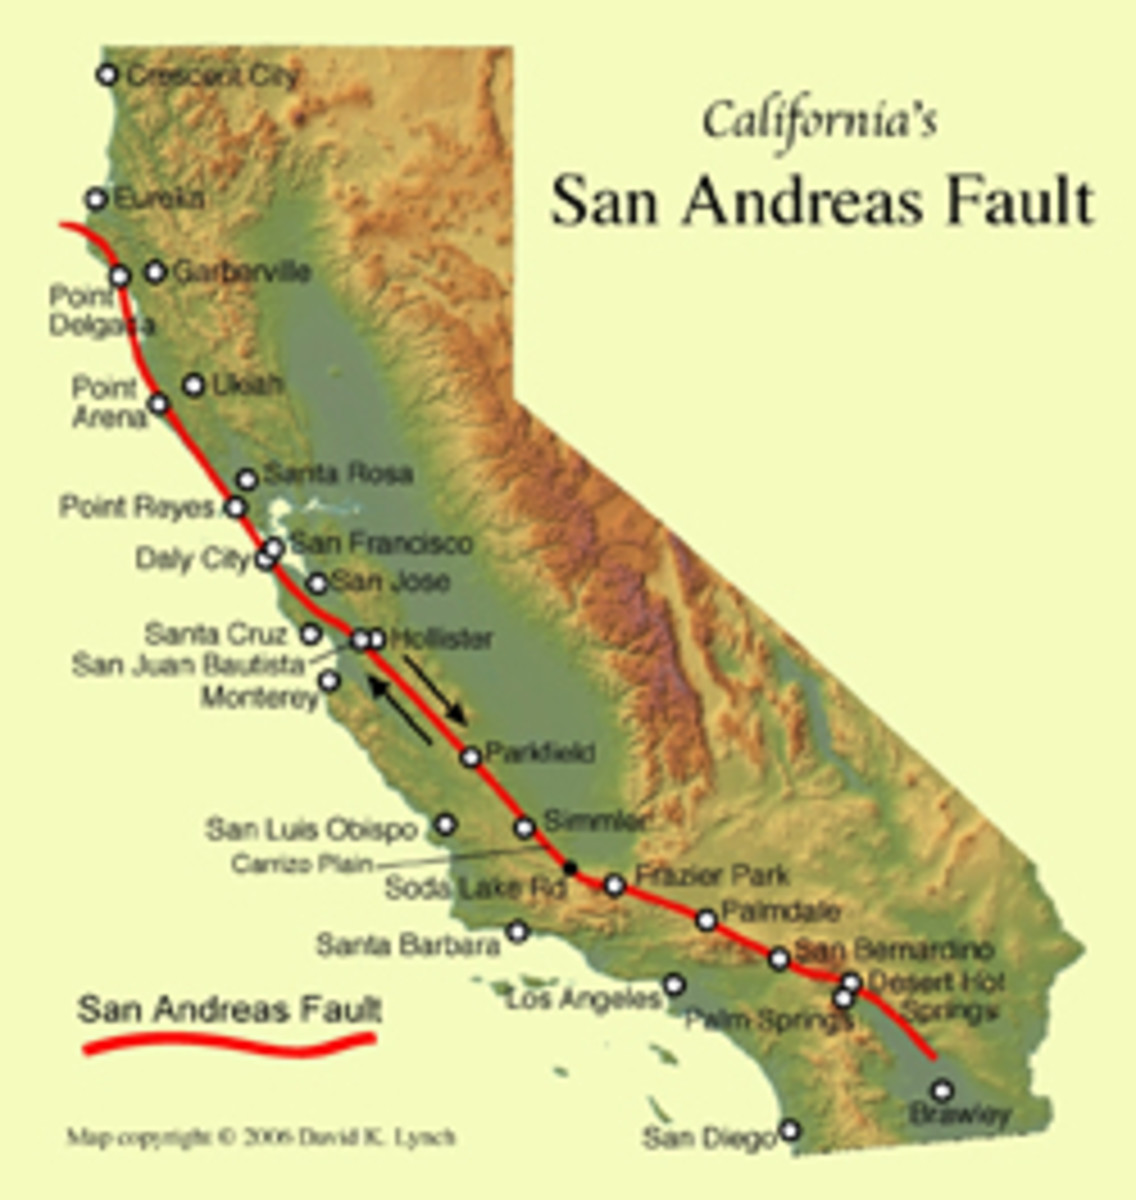 Questions: San Andreas Fault & Earthqaukes